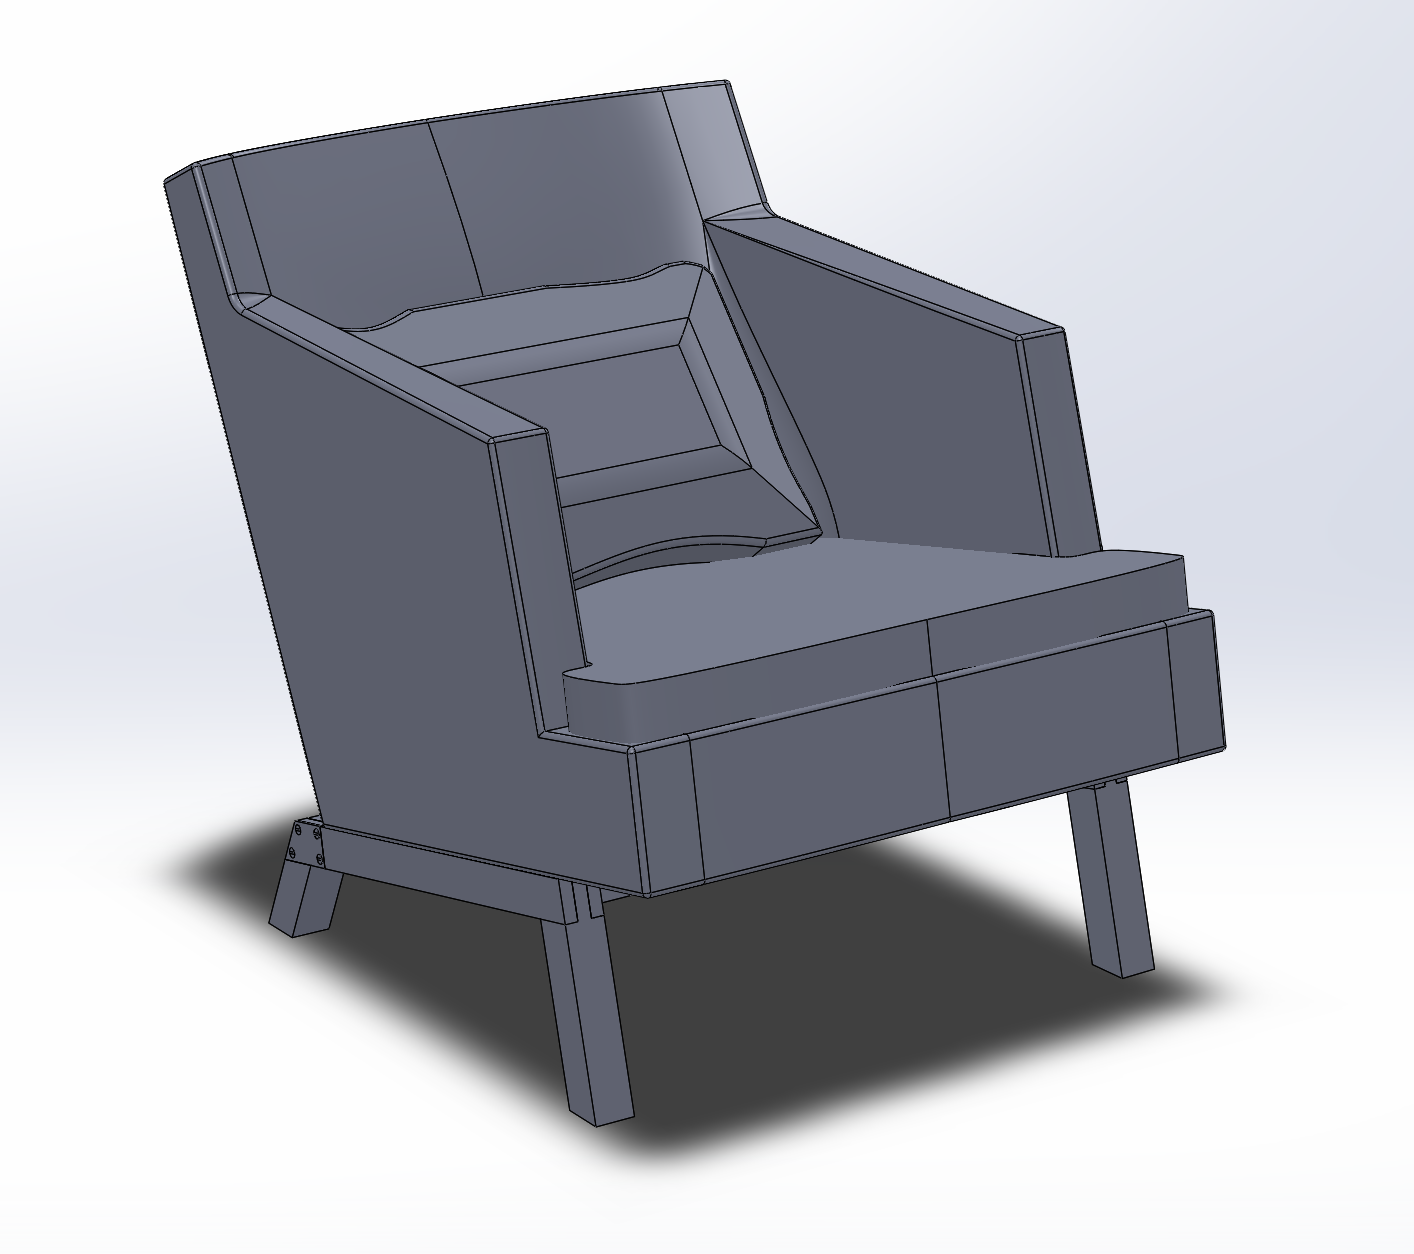 CAD model of an armchair made in Solidworks.